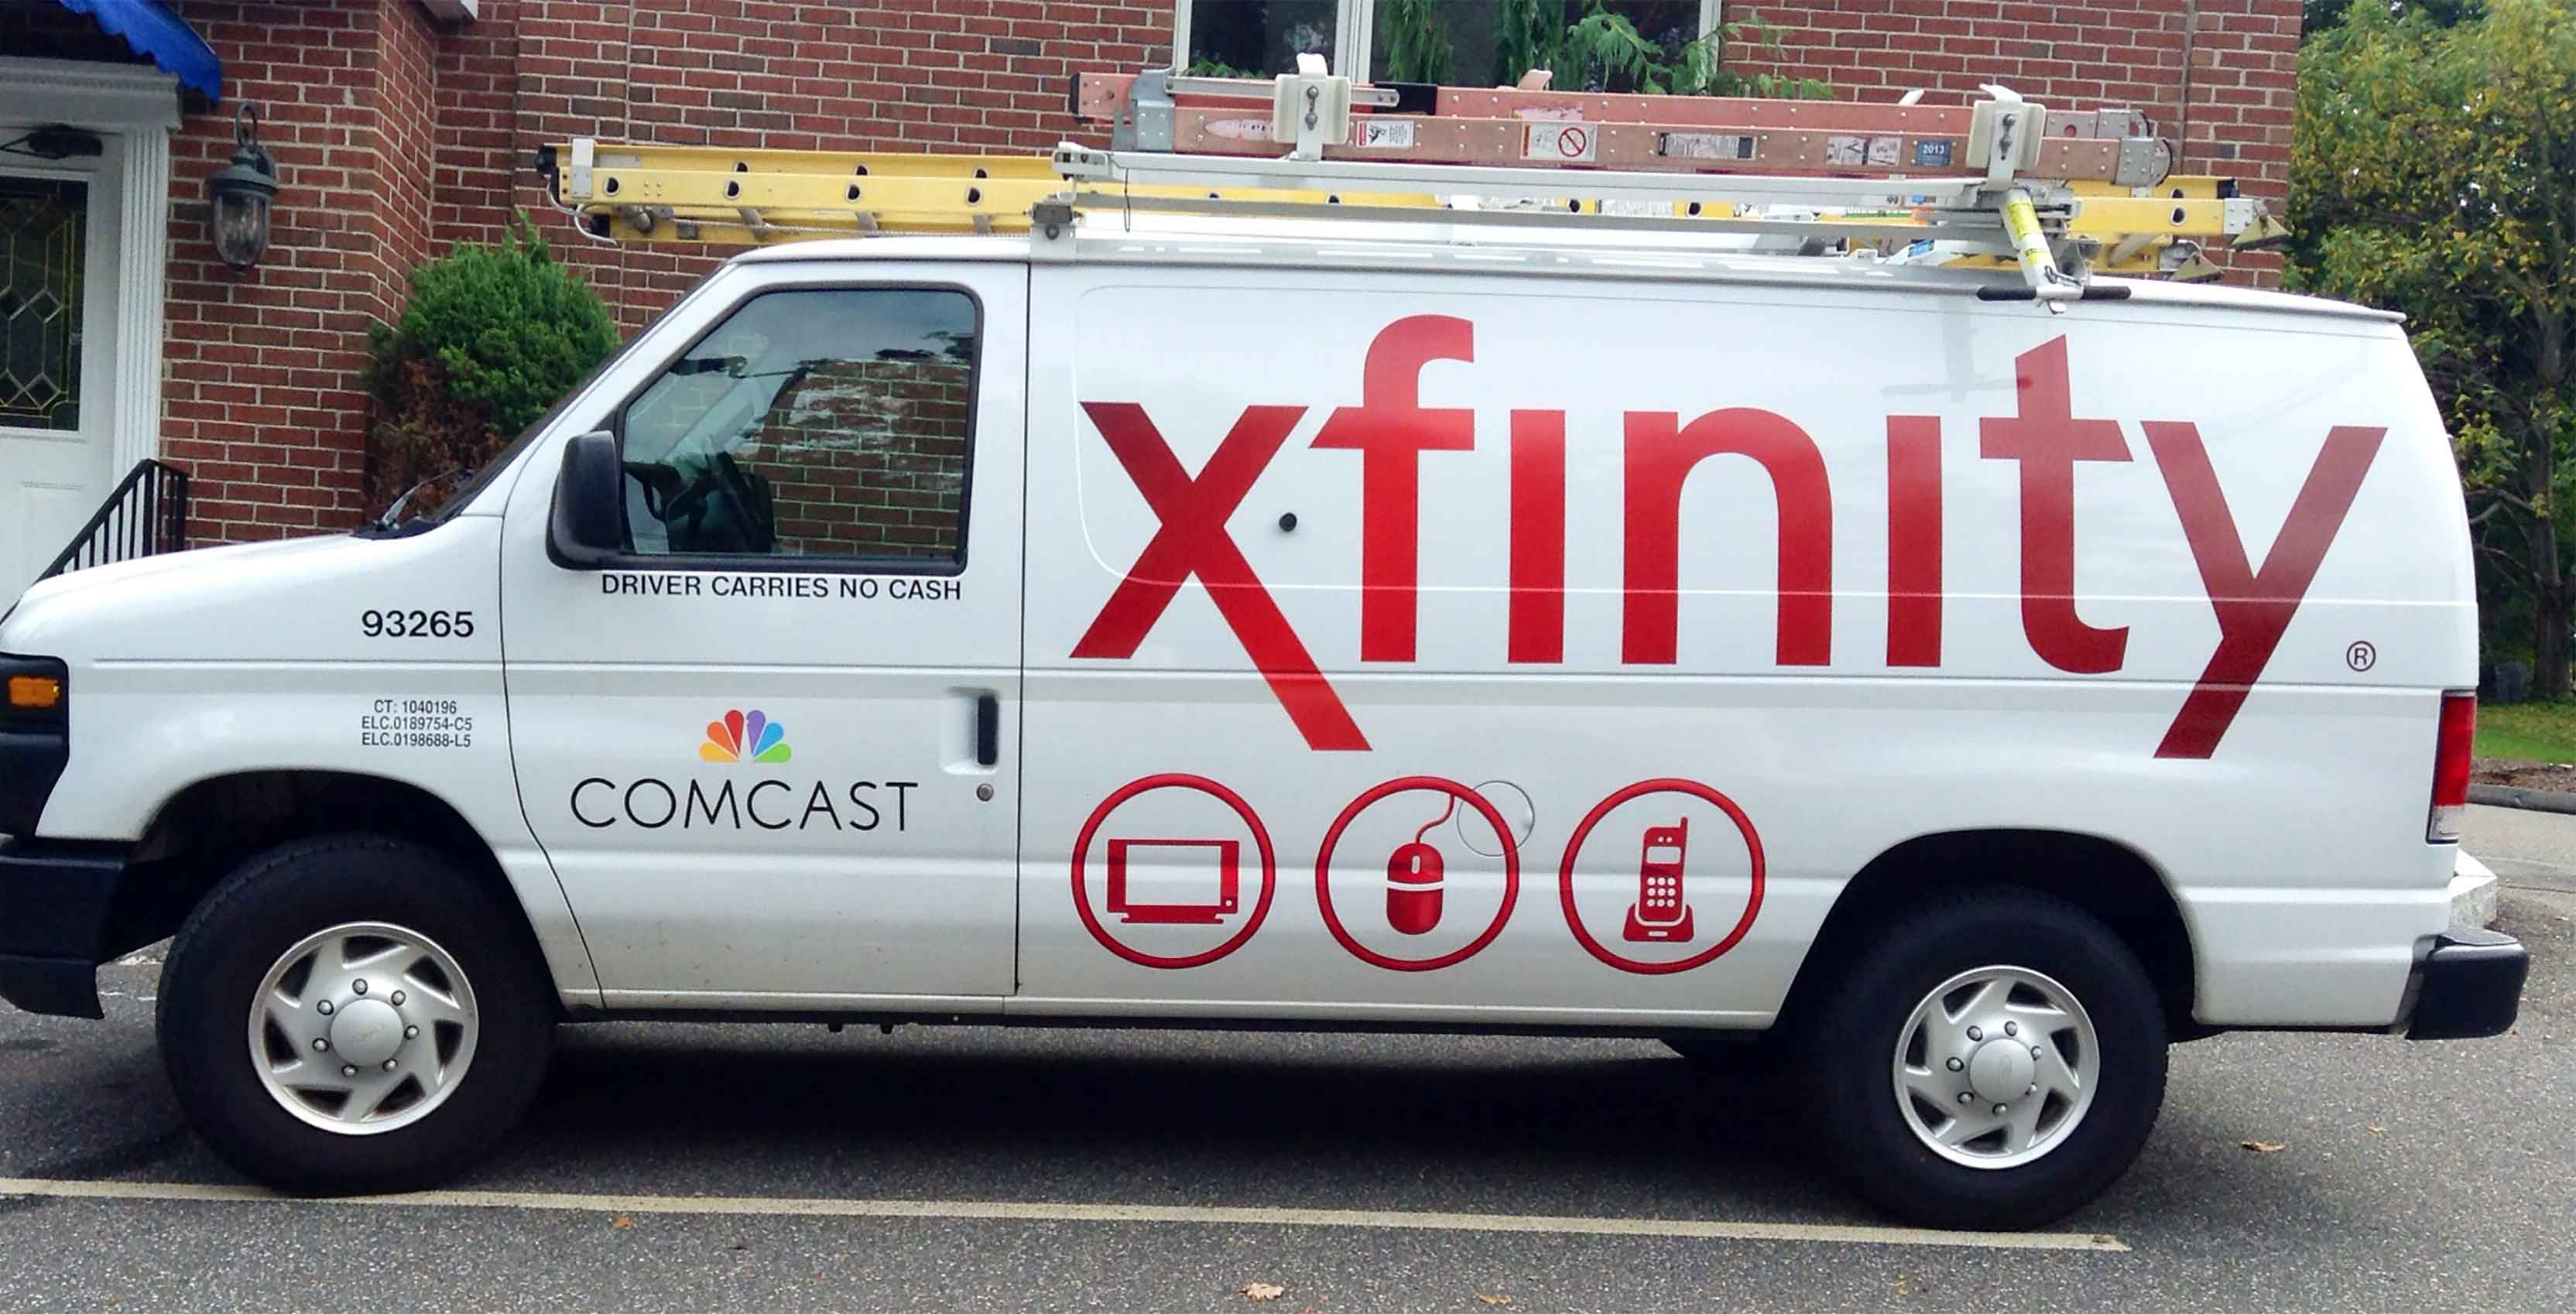 Rogers says it will launch its Comcast X1-based IPTV